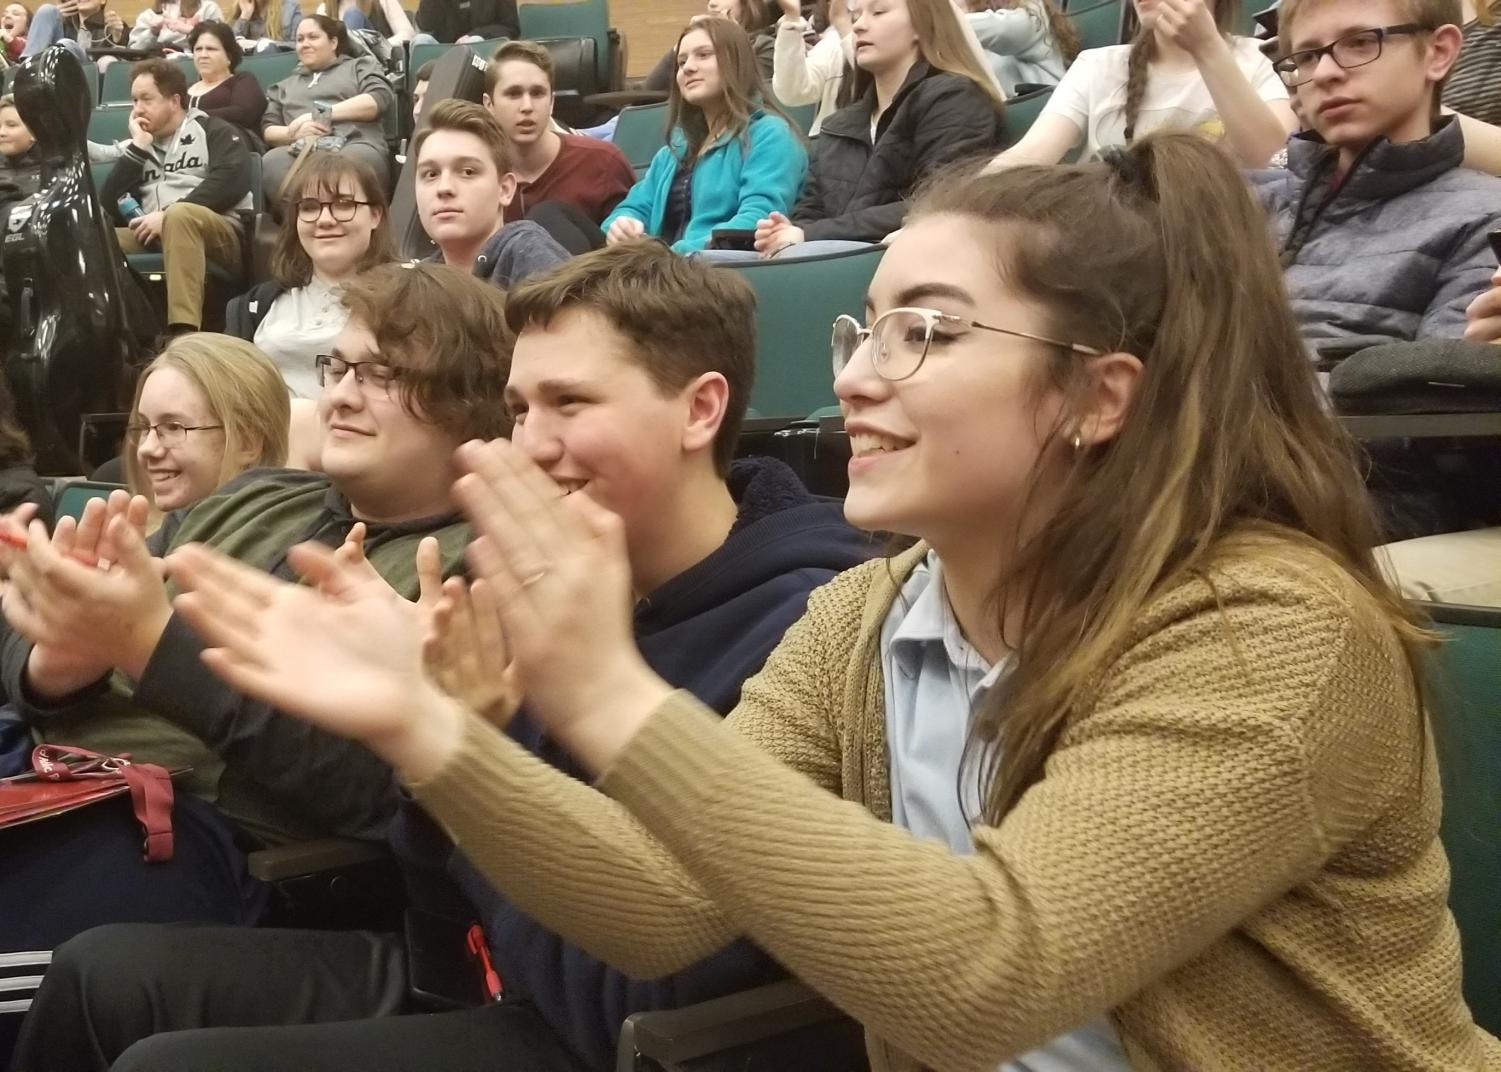 Senior Nathalia Daversa, sophomore Alex Thaler, sophomore Aiden Phillips and sophomore Joshua Terza clap during the awards ceremony. Around 35 students from Altoona placed.